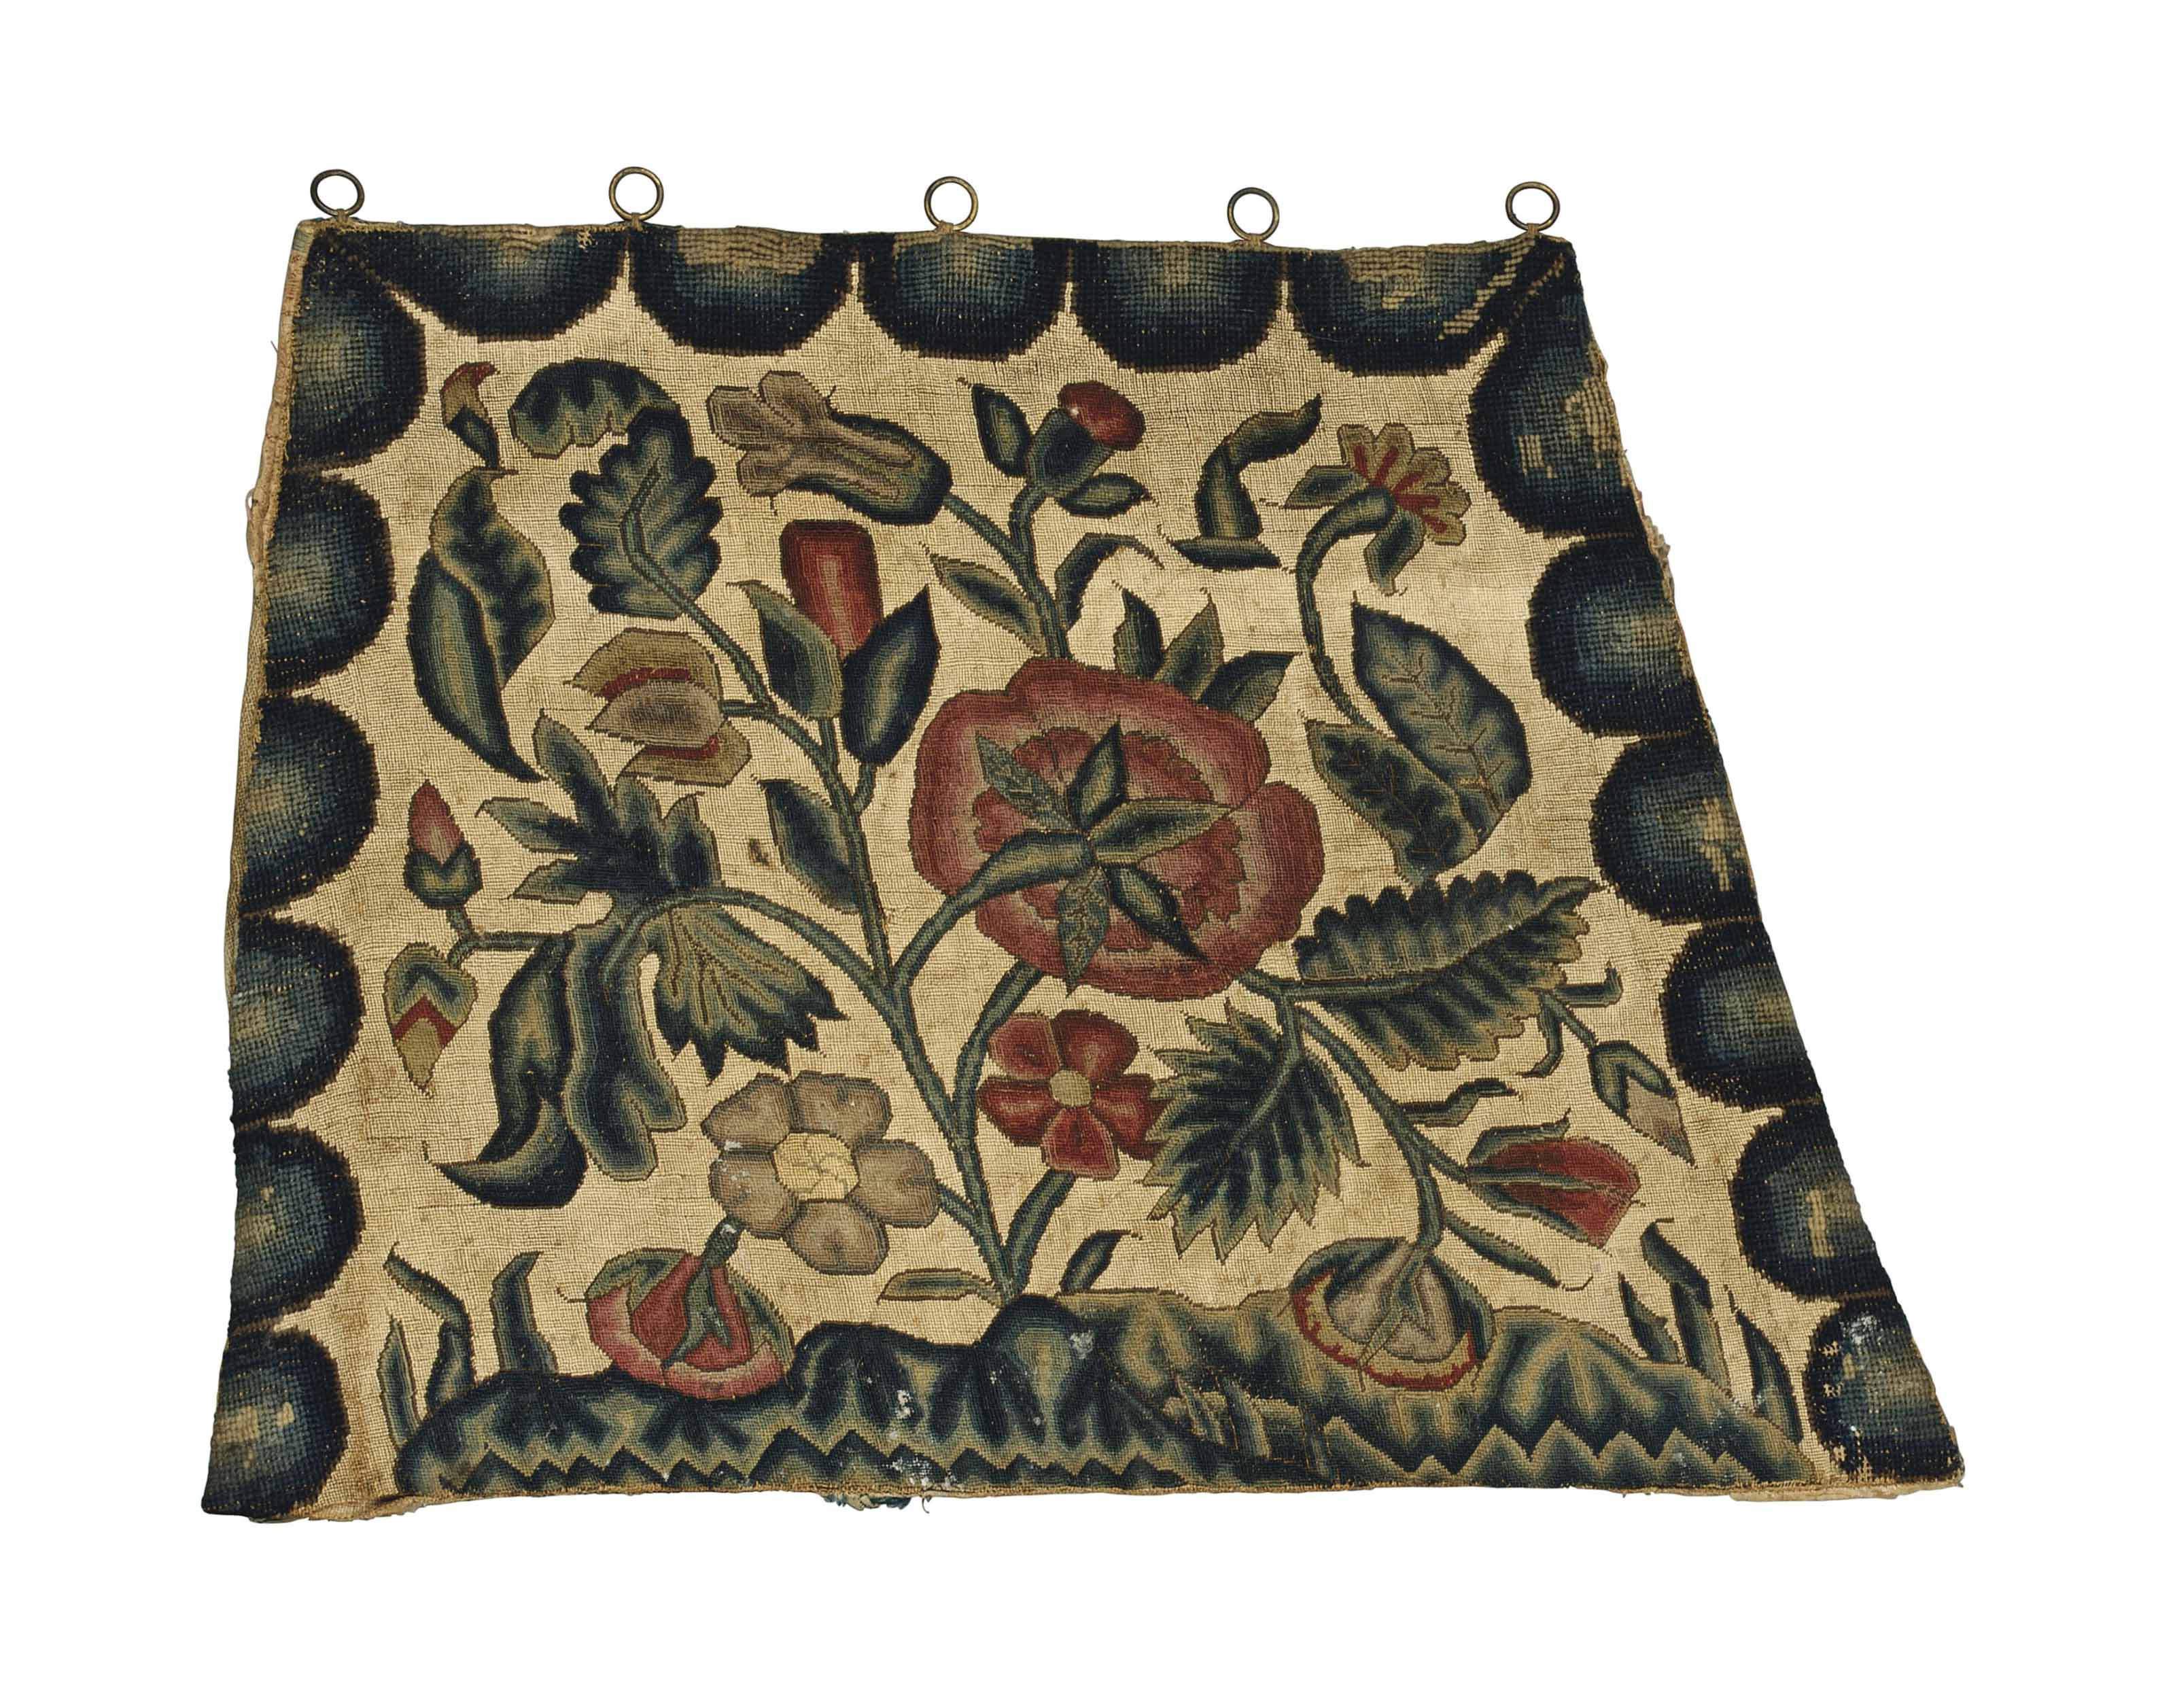 A NEEDLEWORK SEAT COVER